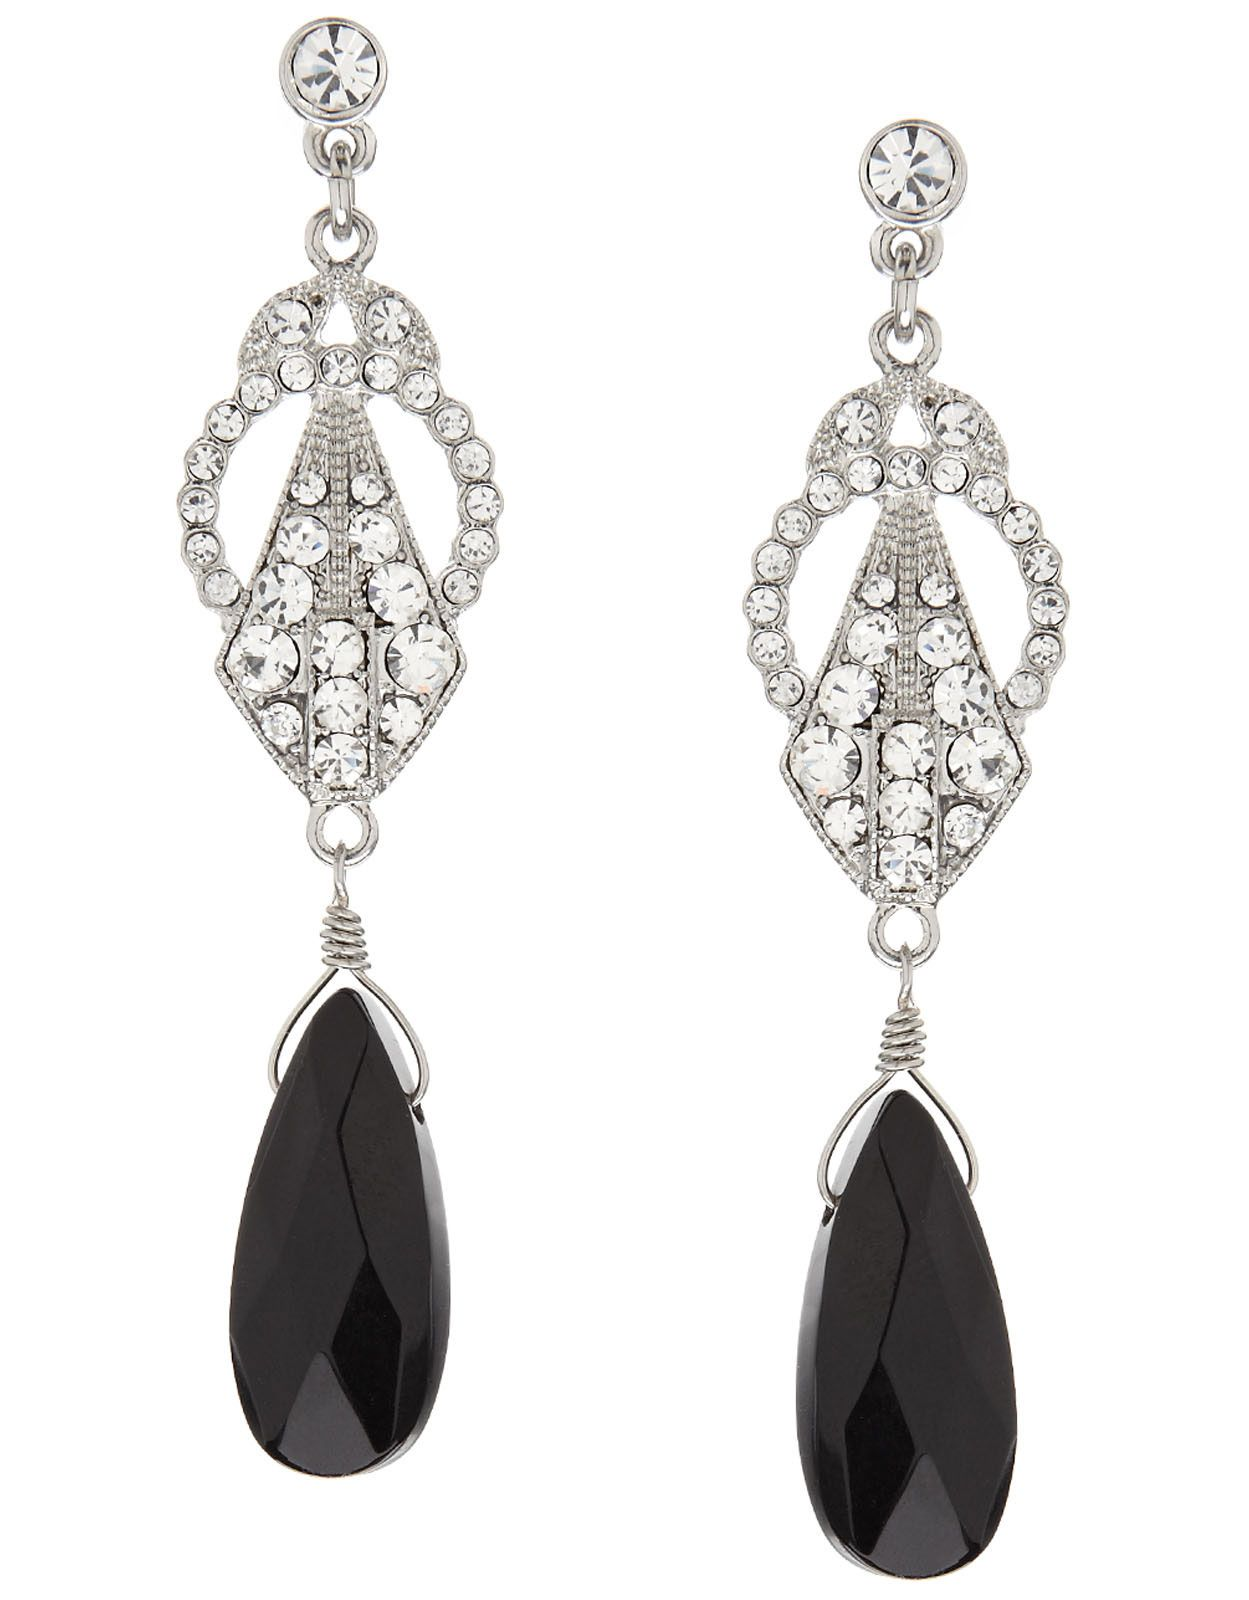 Baroque Stone Short Drop Earrings Adornments Pinterest